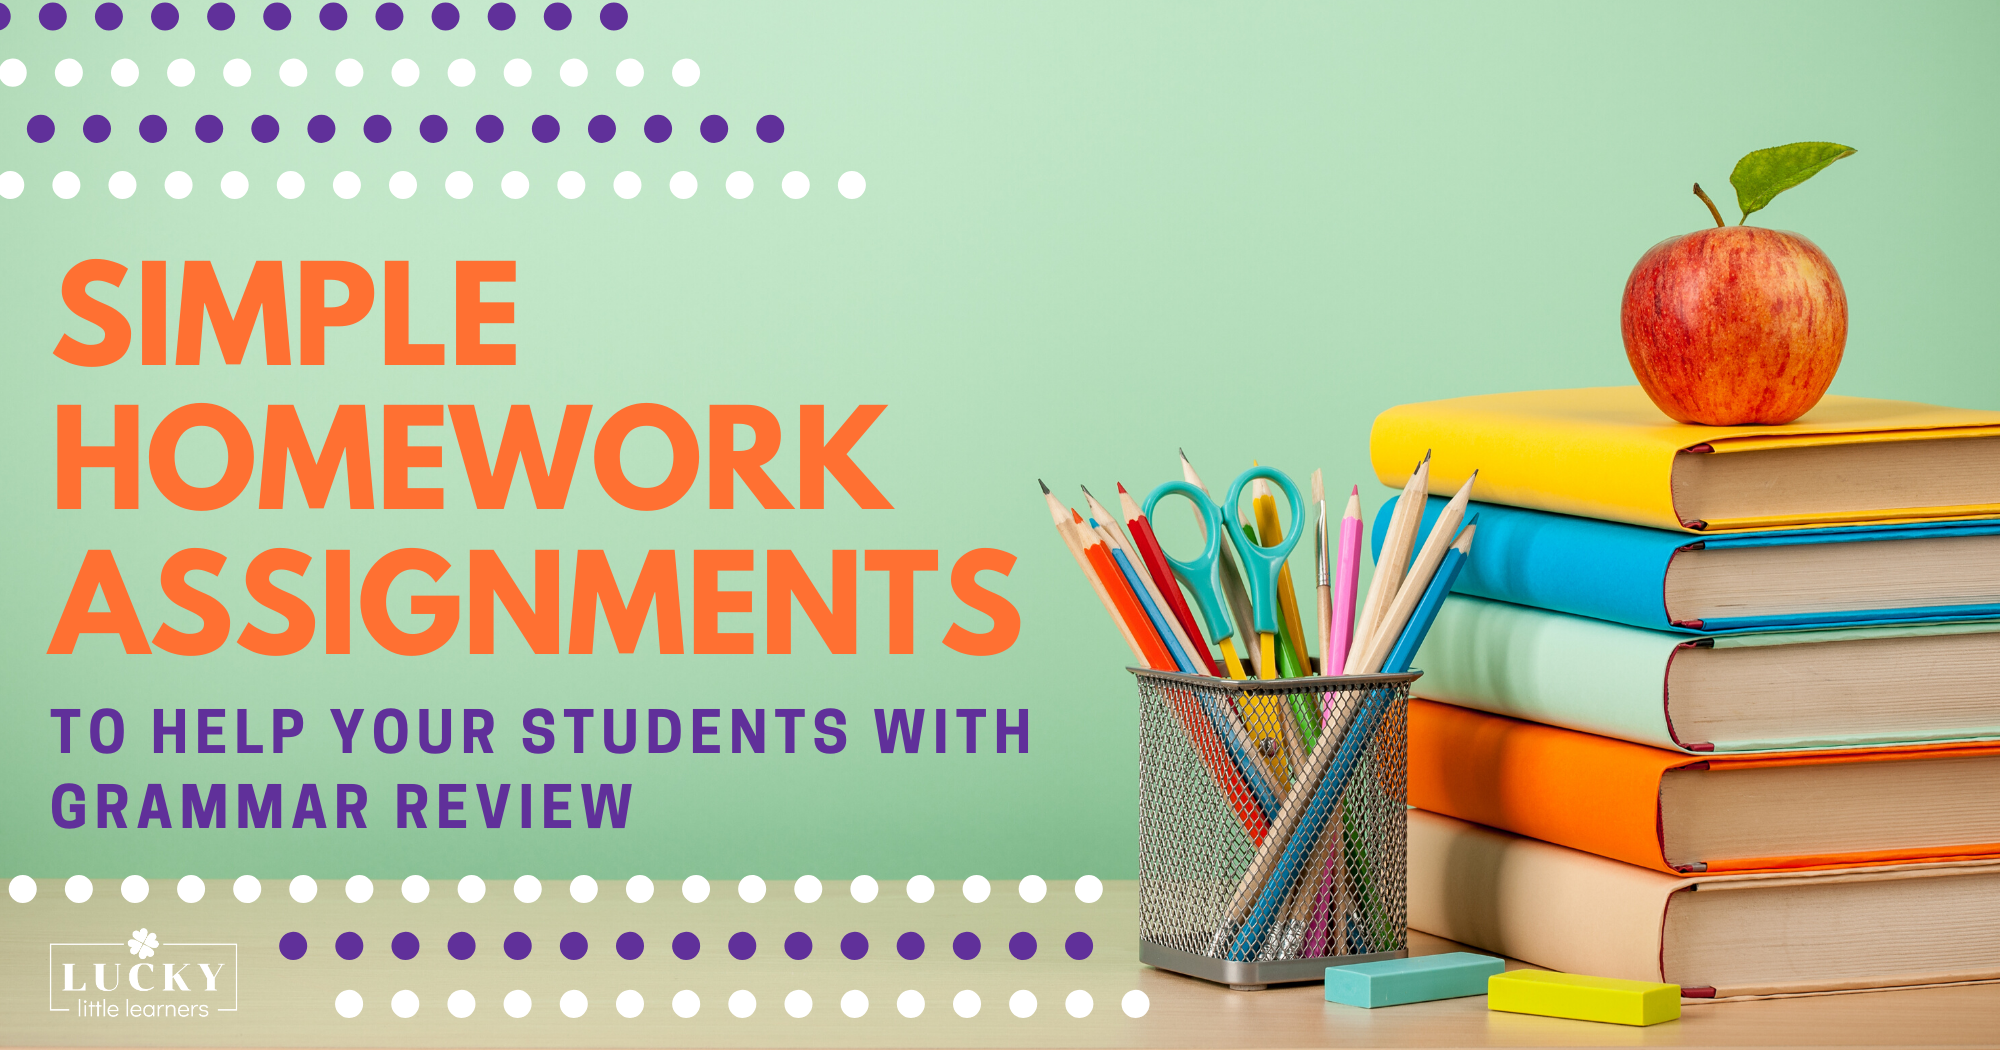 Simple Homework Assignments to Help Your Students with Grammar Review